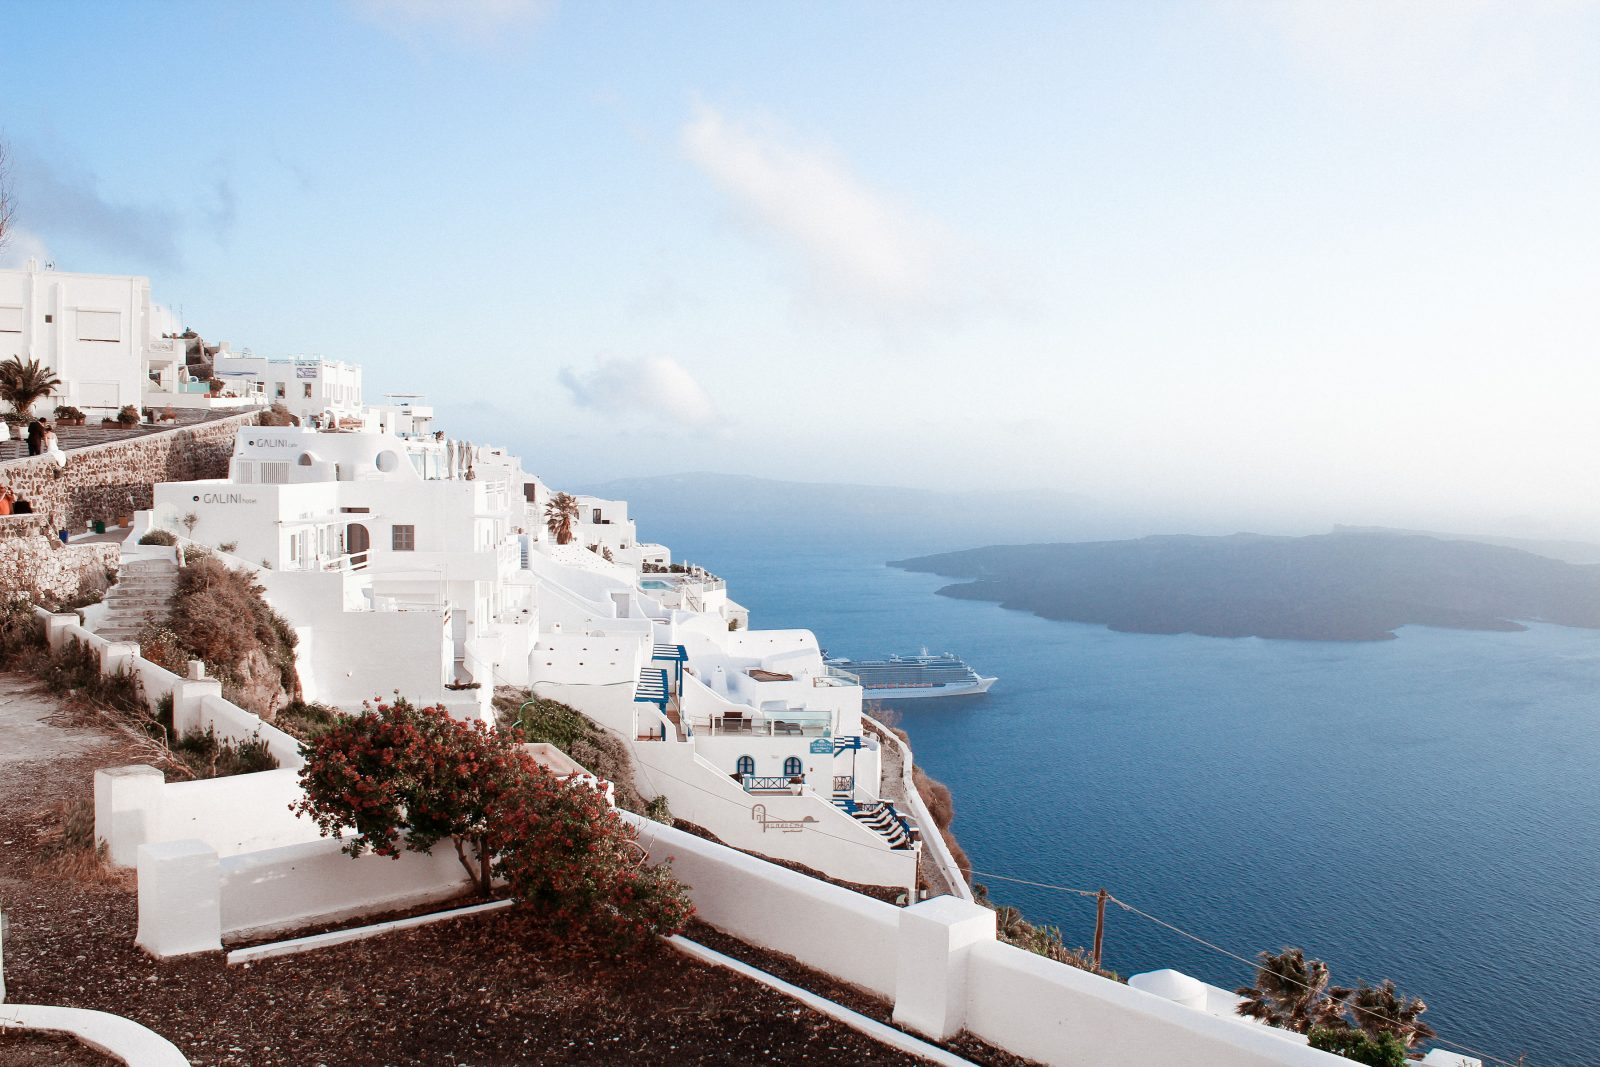 Santorini, Greece - villas, cruises, and other luxury getaway packages